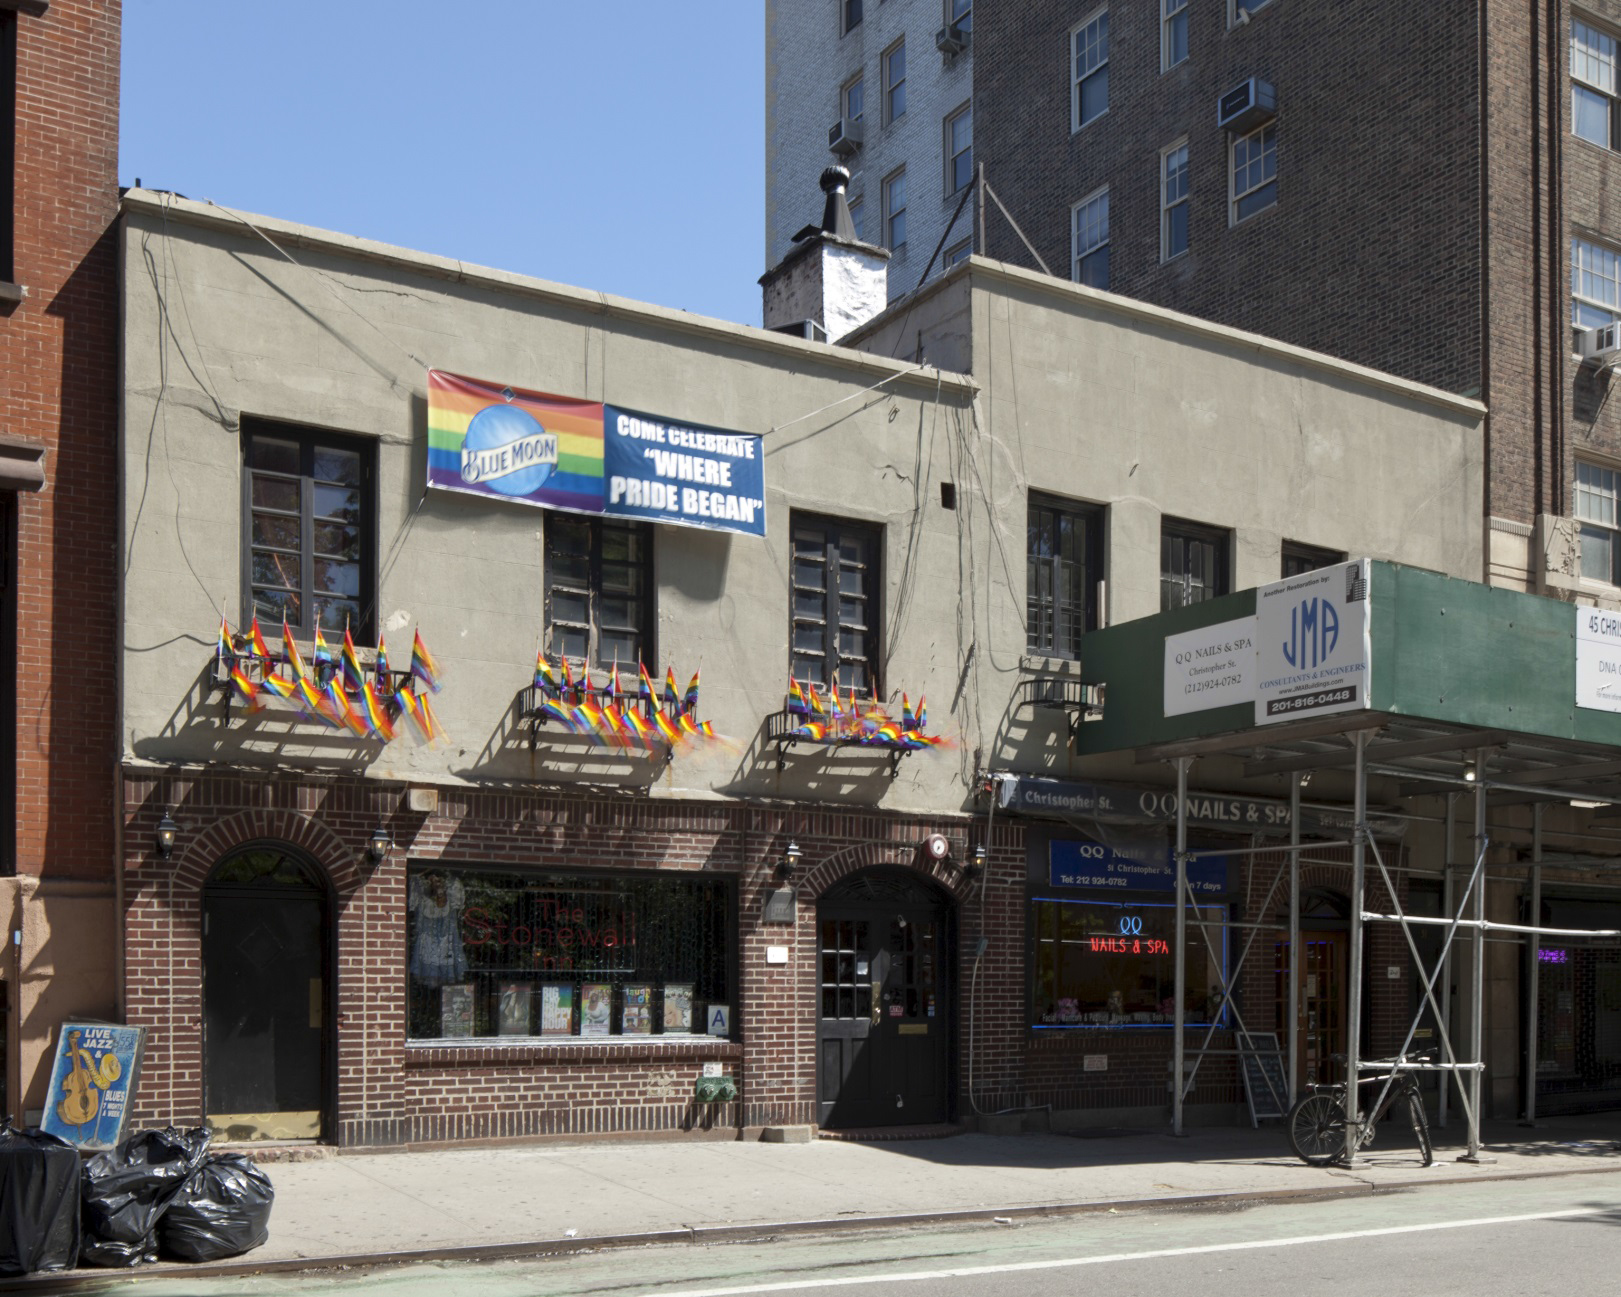 Stonewall Inn, June 2015. LPC photo.